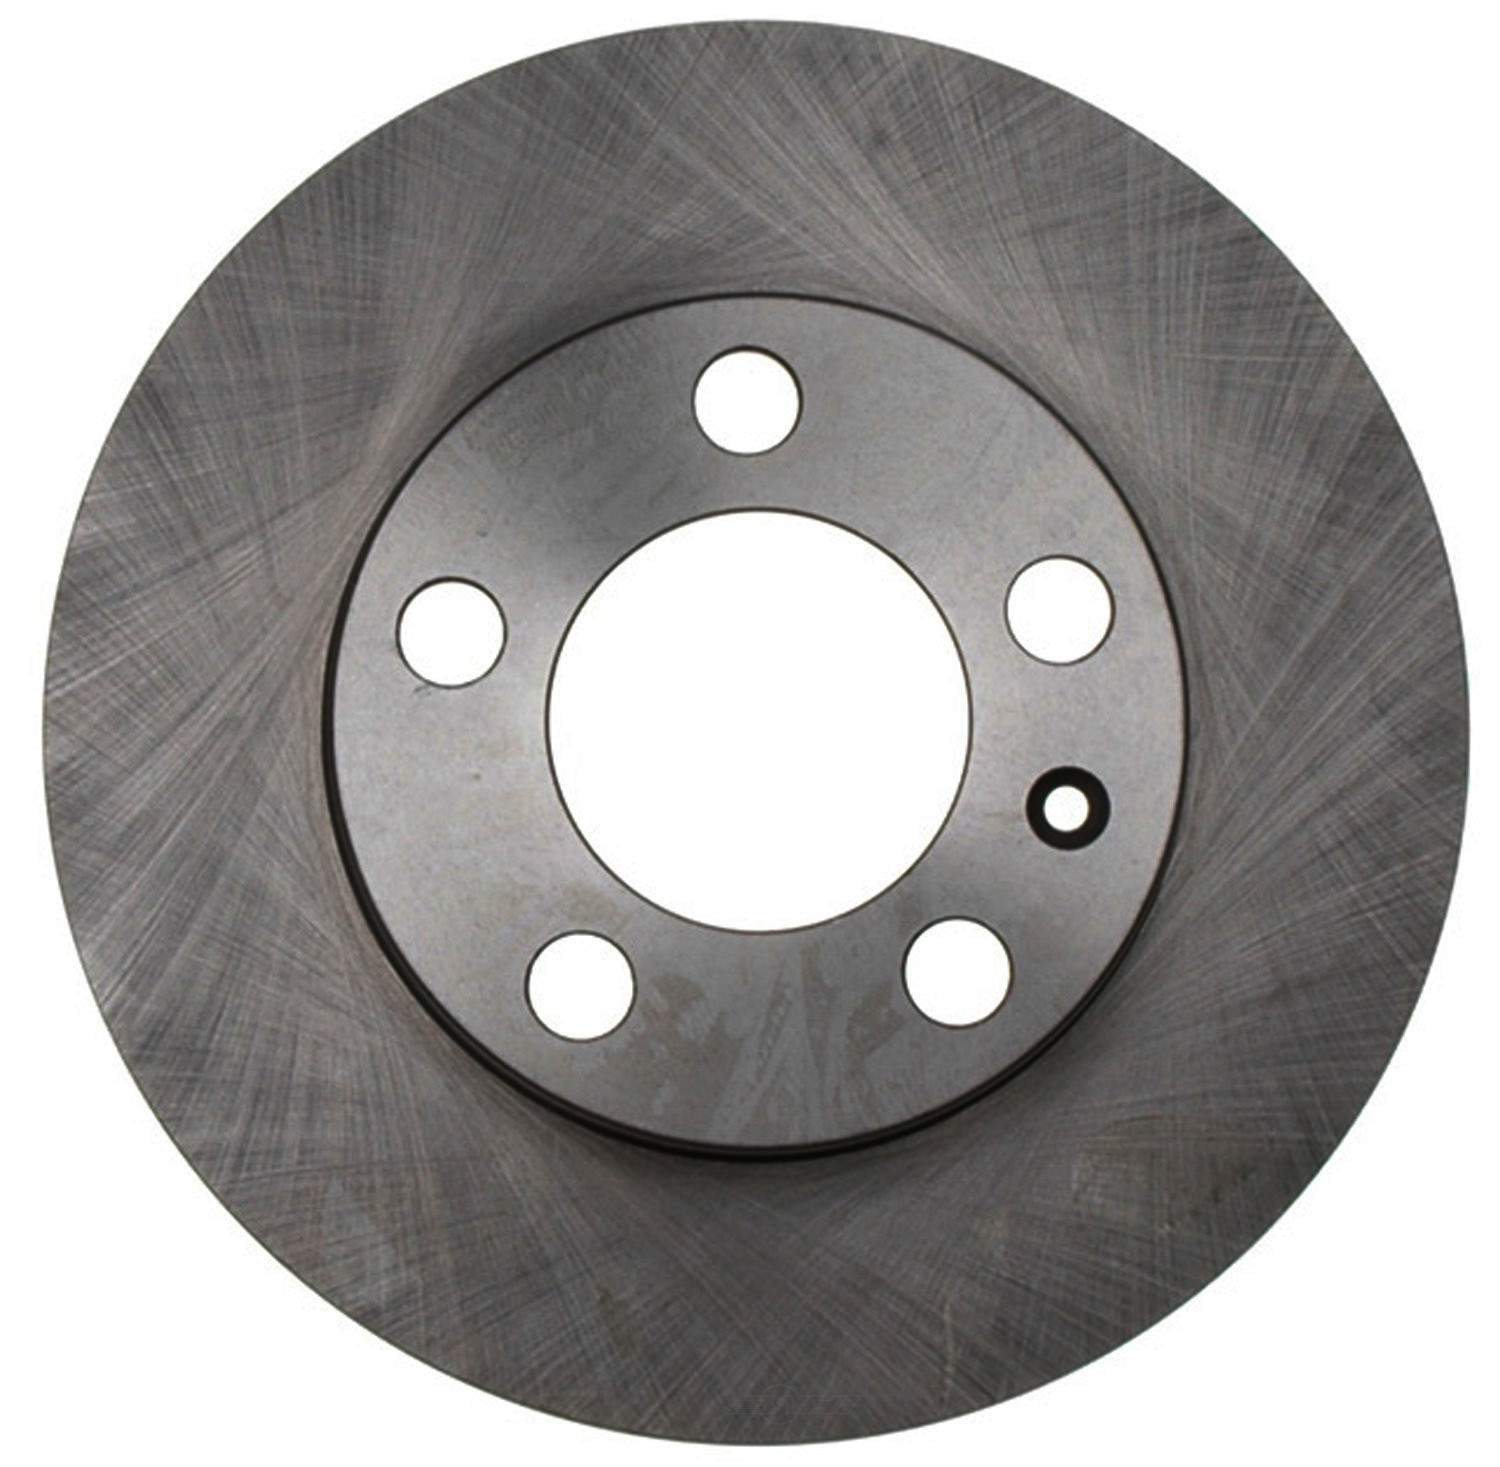 ACDELCO SILVER/ADVANTAGE - Non-Coated Disc Brake Rotor - DCD 18A943A